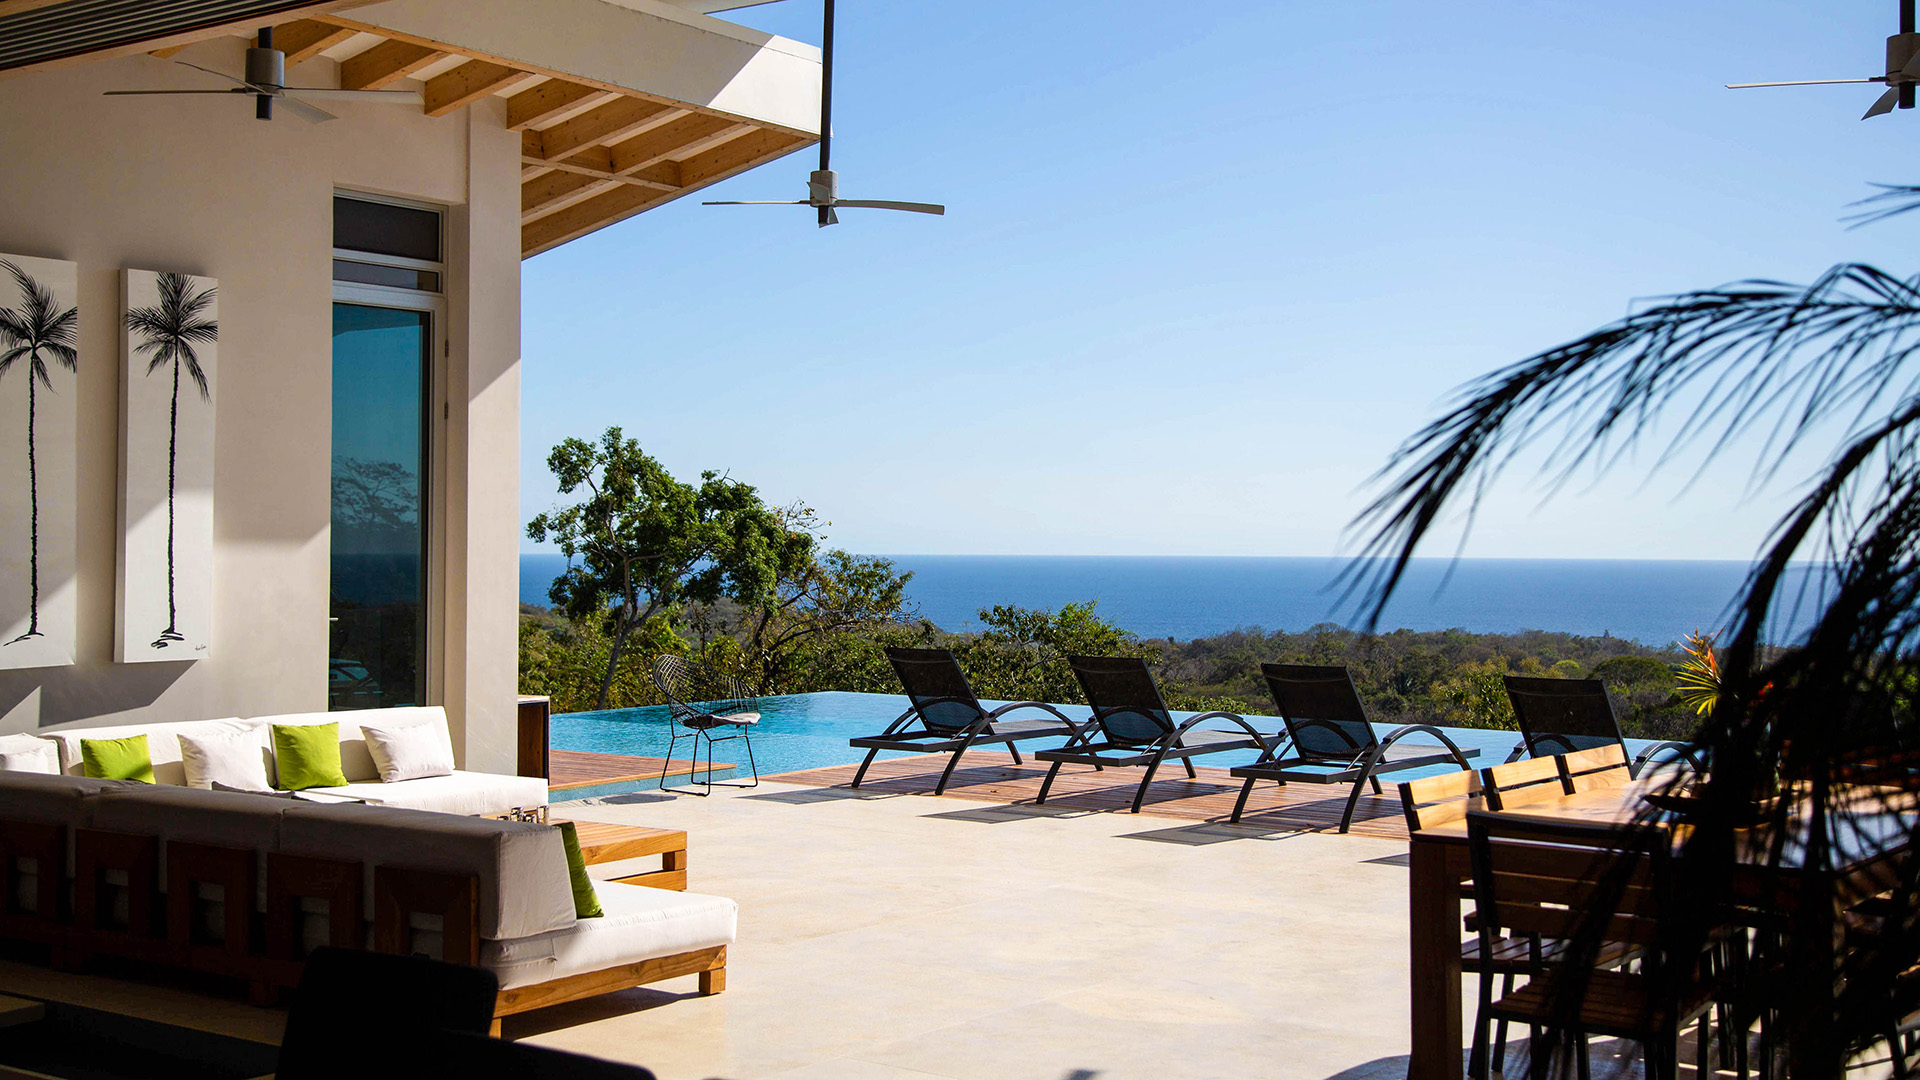 View of the villa patio overlooking the Pacific Ocean in Nosara, Costa Rica